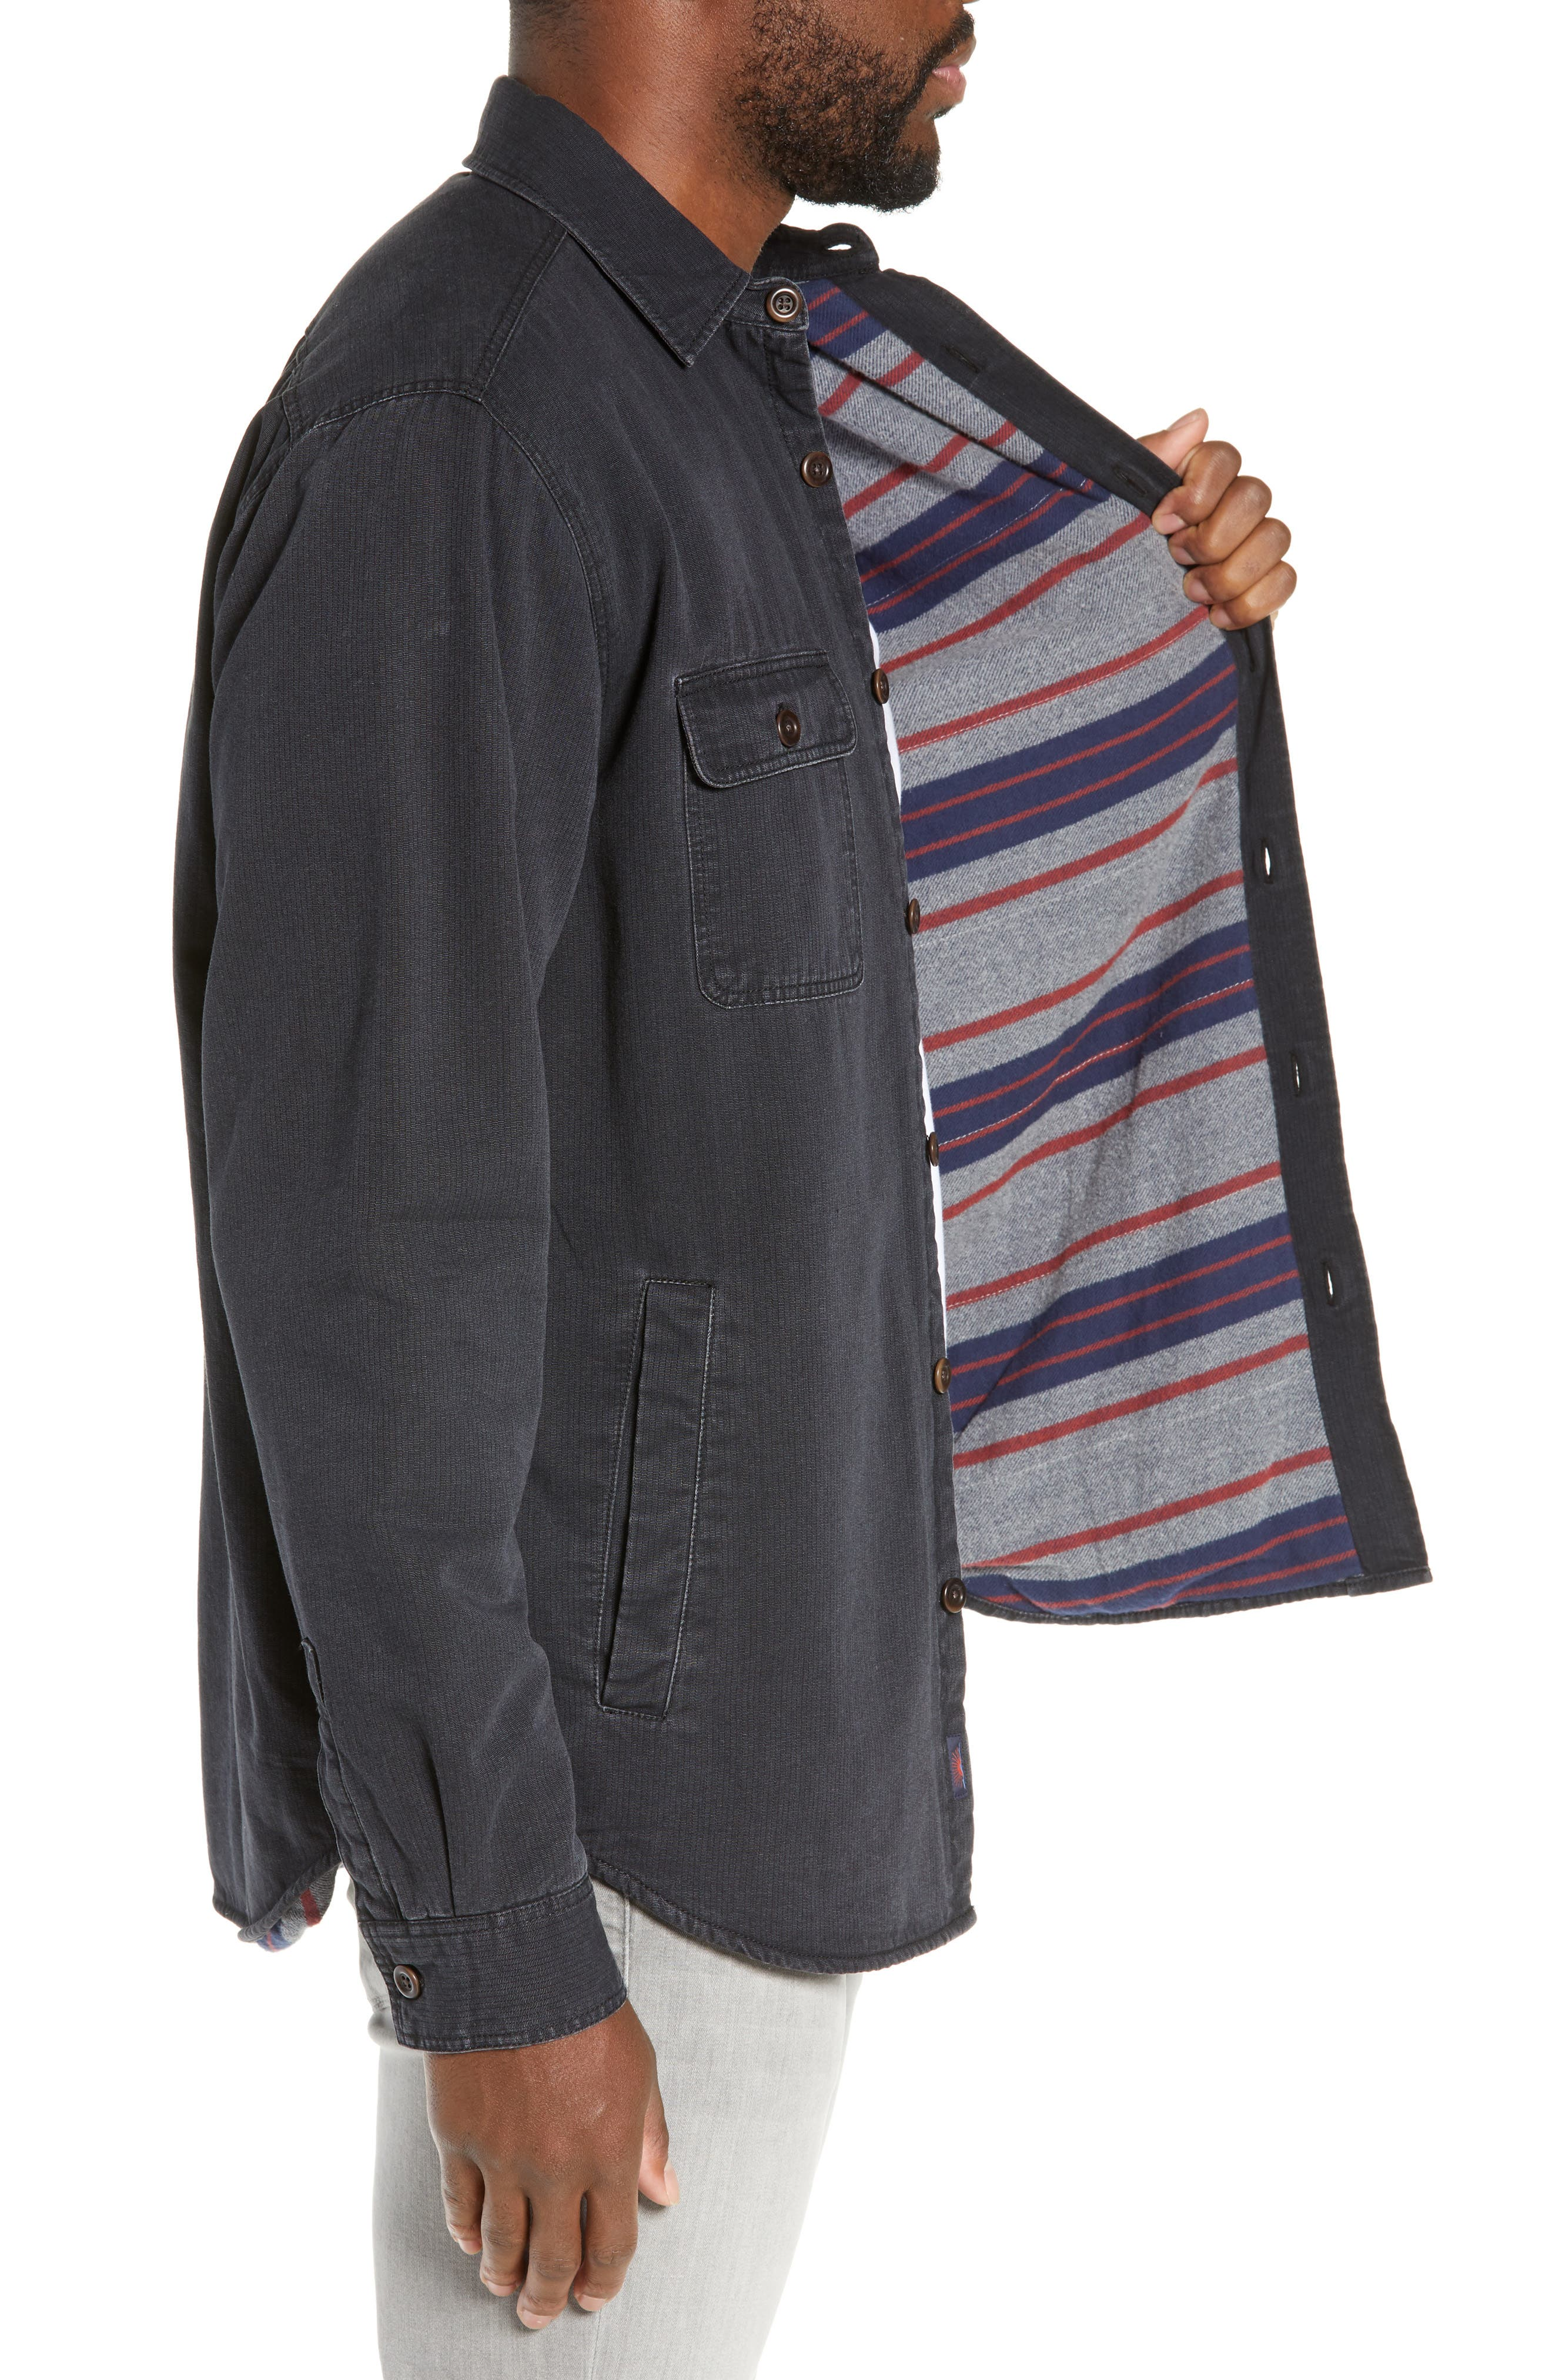 Blanket Lined CPO Jacket,                             Alternate thumbnail 3, color,                             SULPHUR DYED BLACK